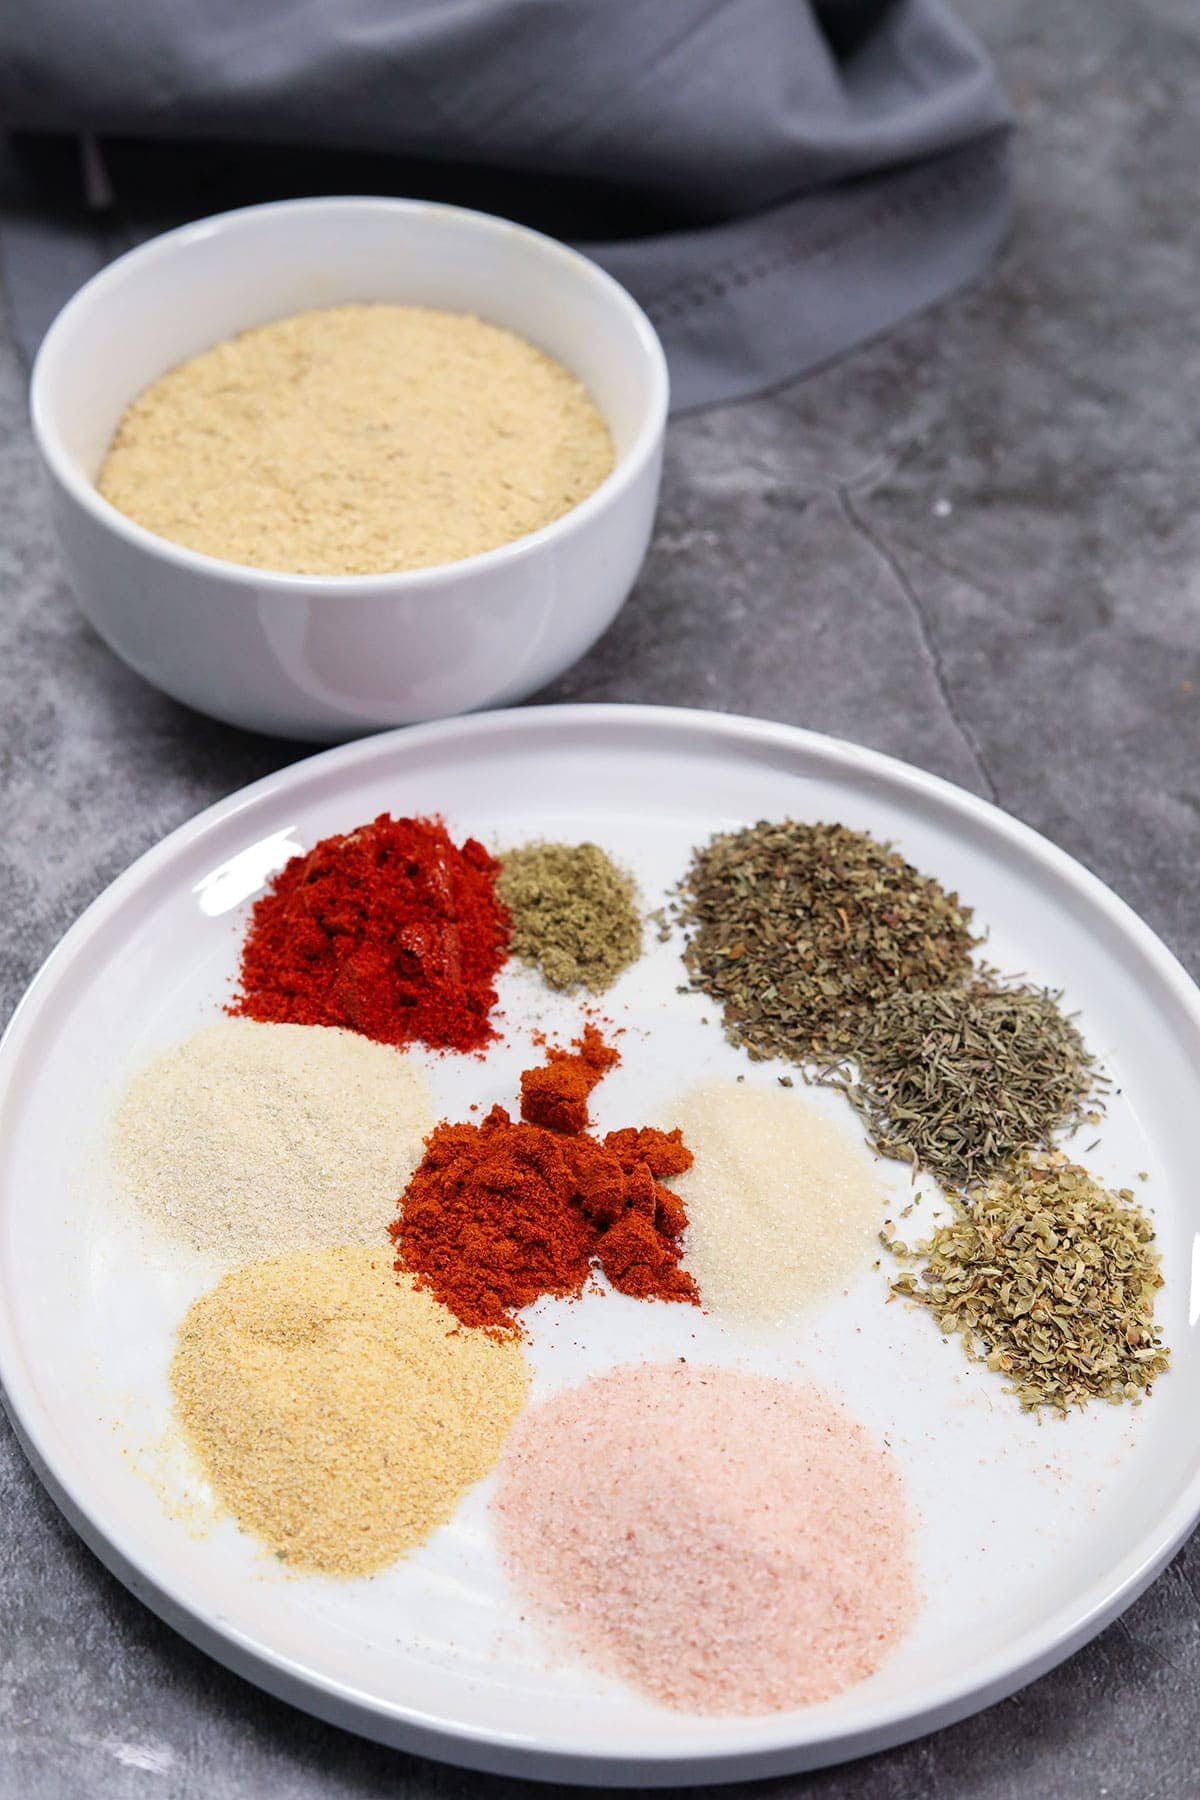 Ingredients for chicken style seasoning